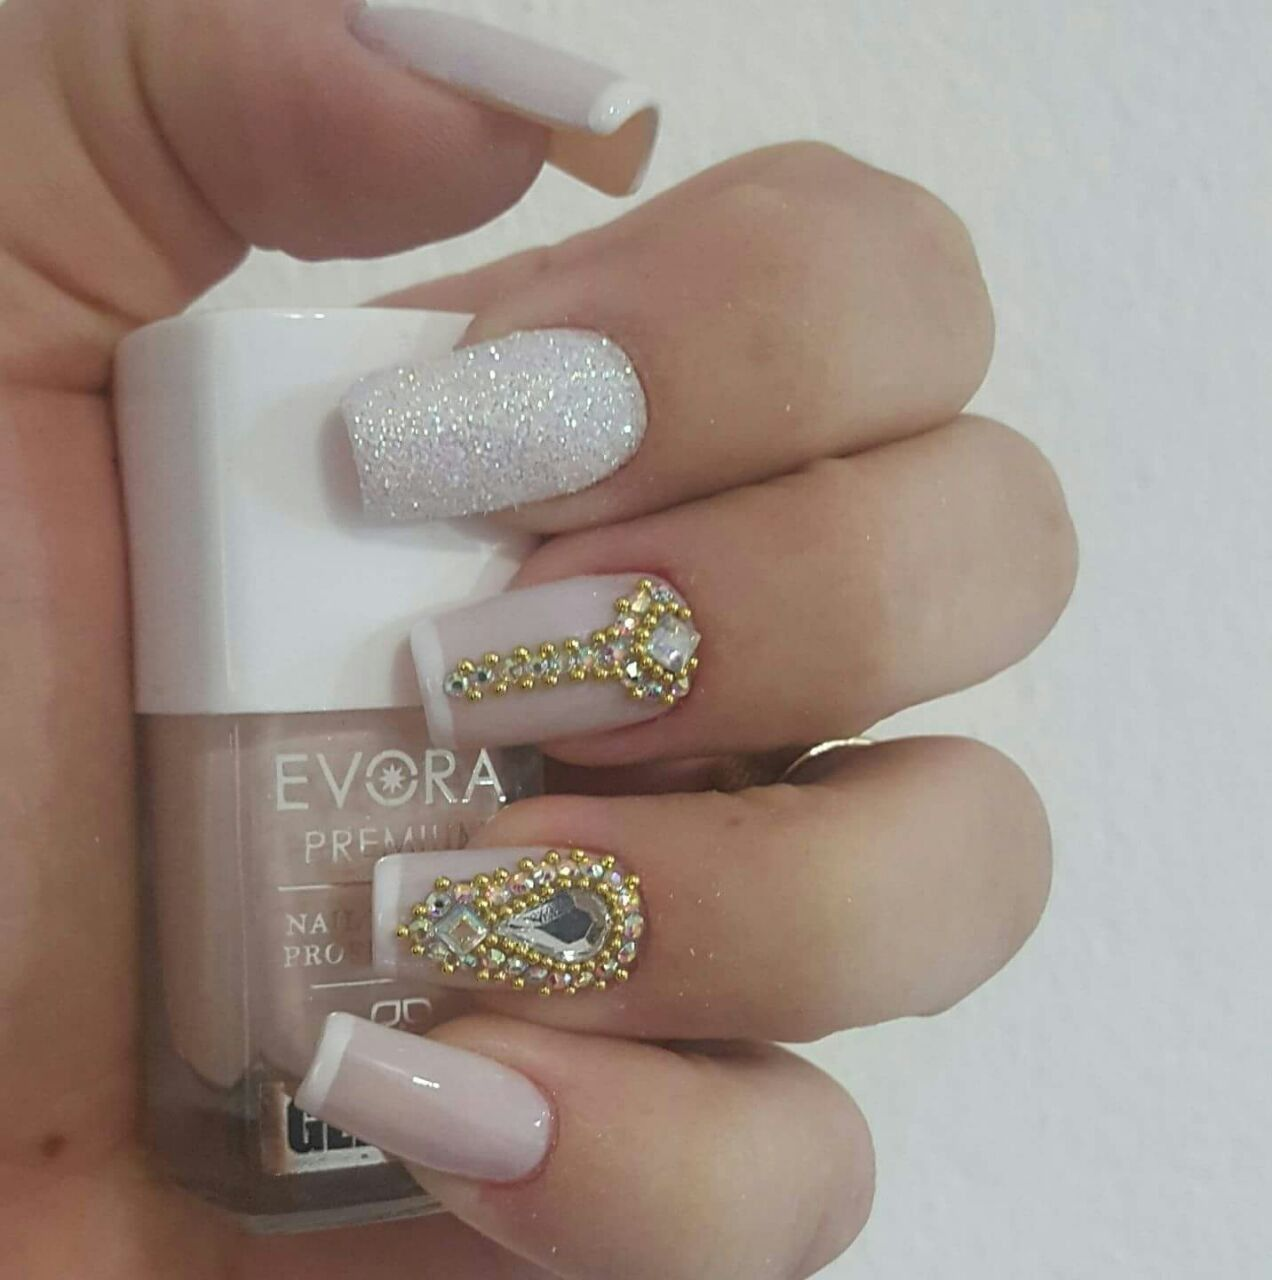 Pin by Numright Tiamaria on Fantasy | Pinterest | Manicure